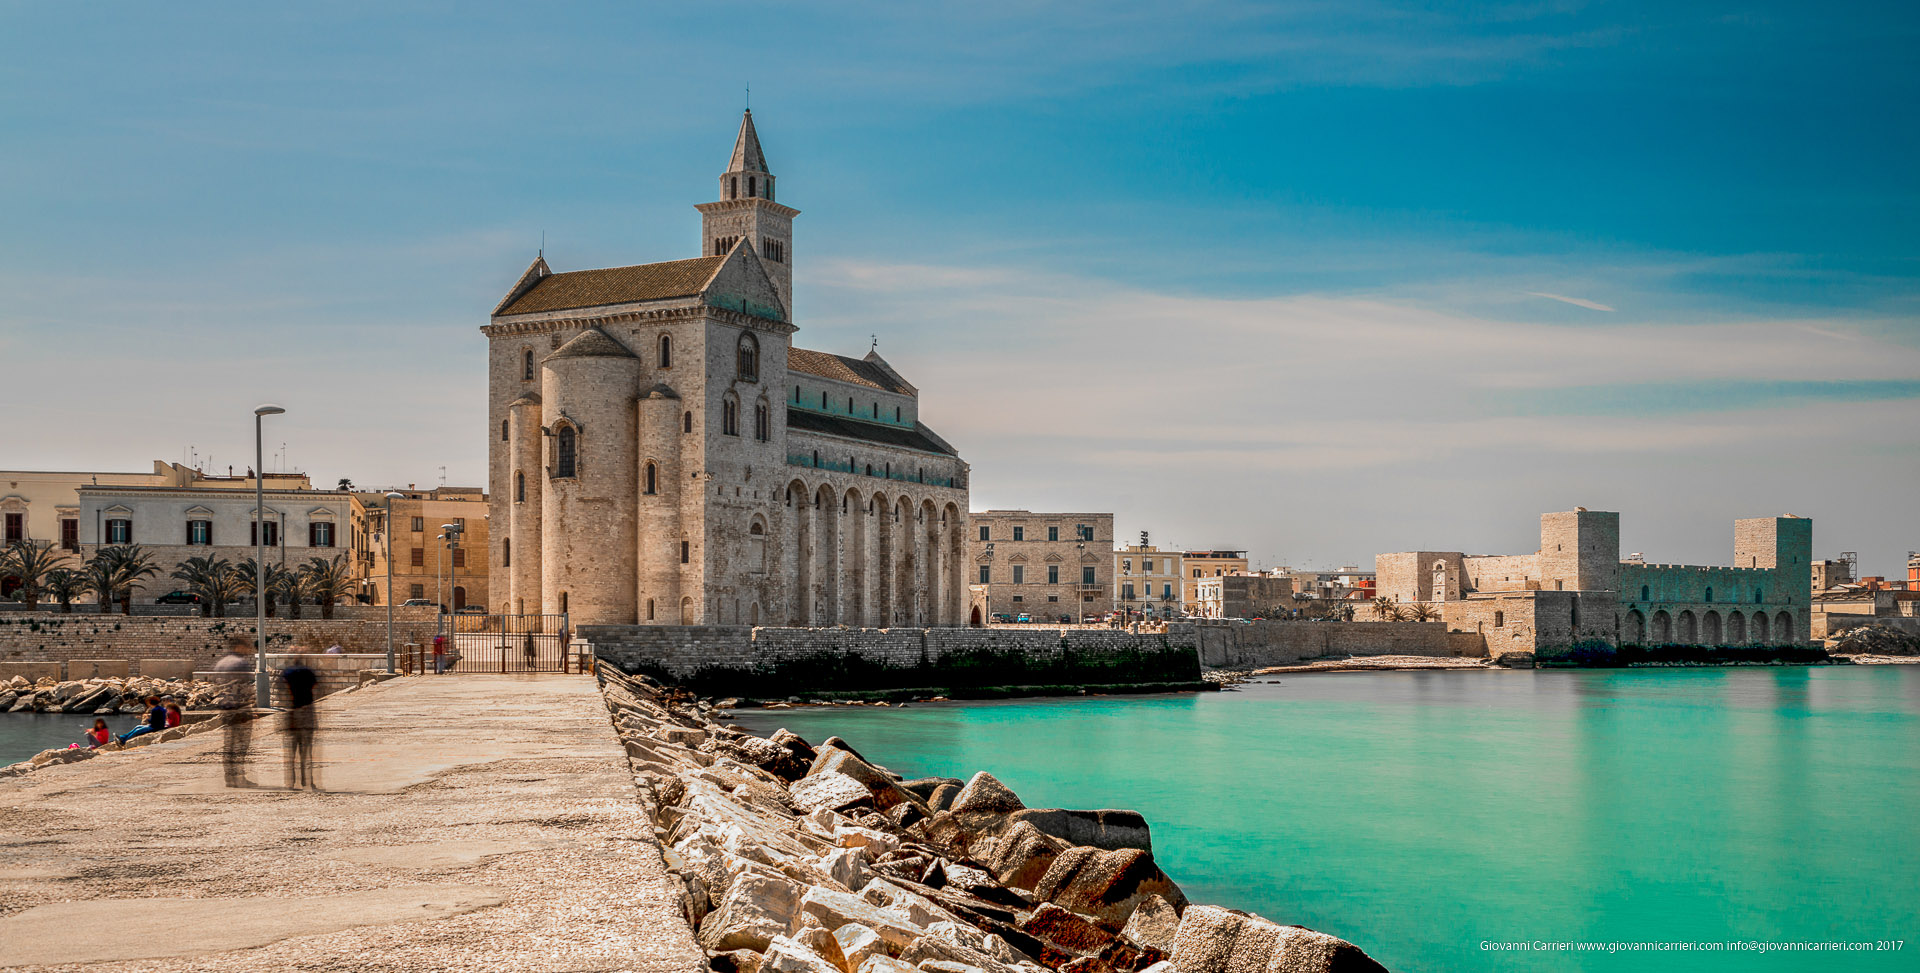 Photographs of Trani